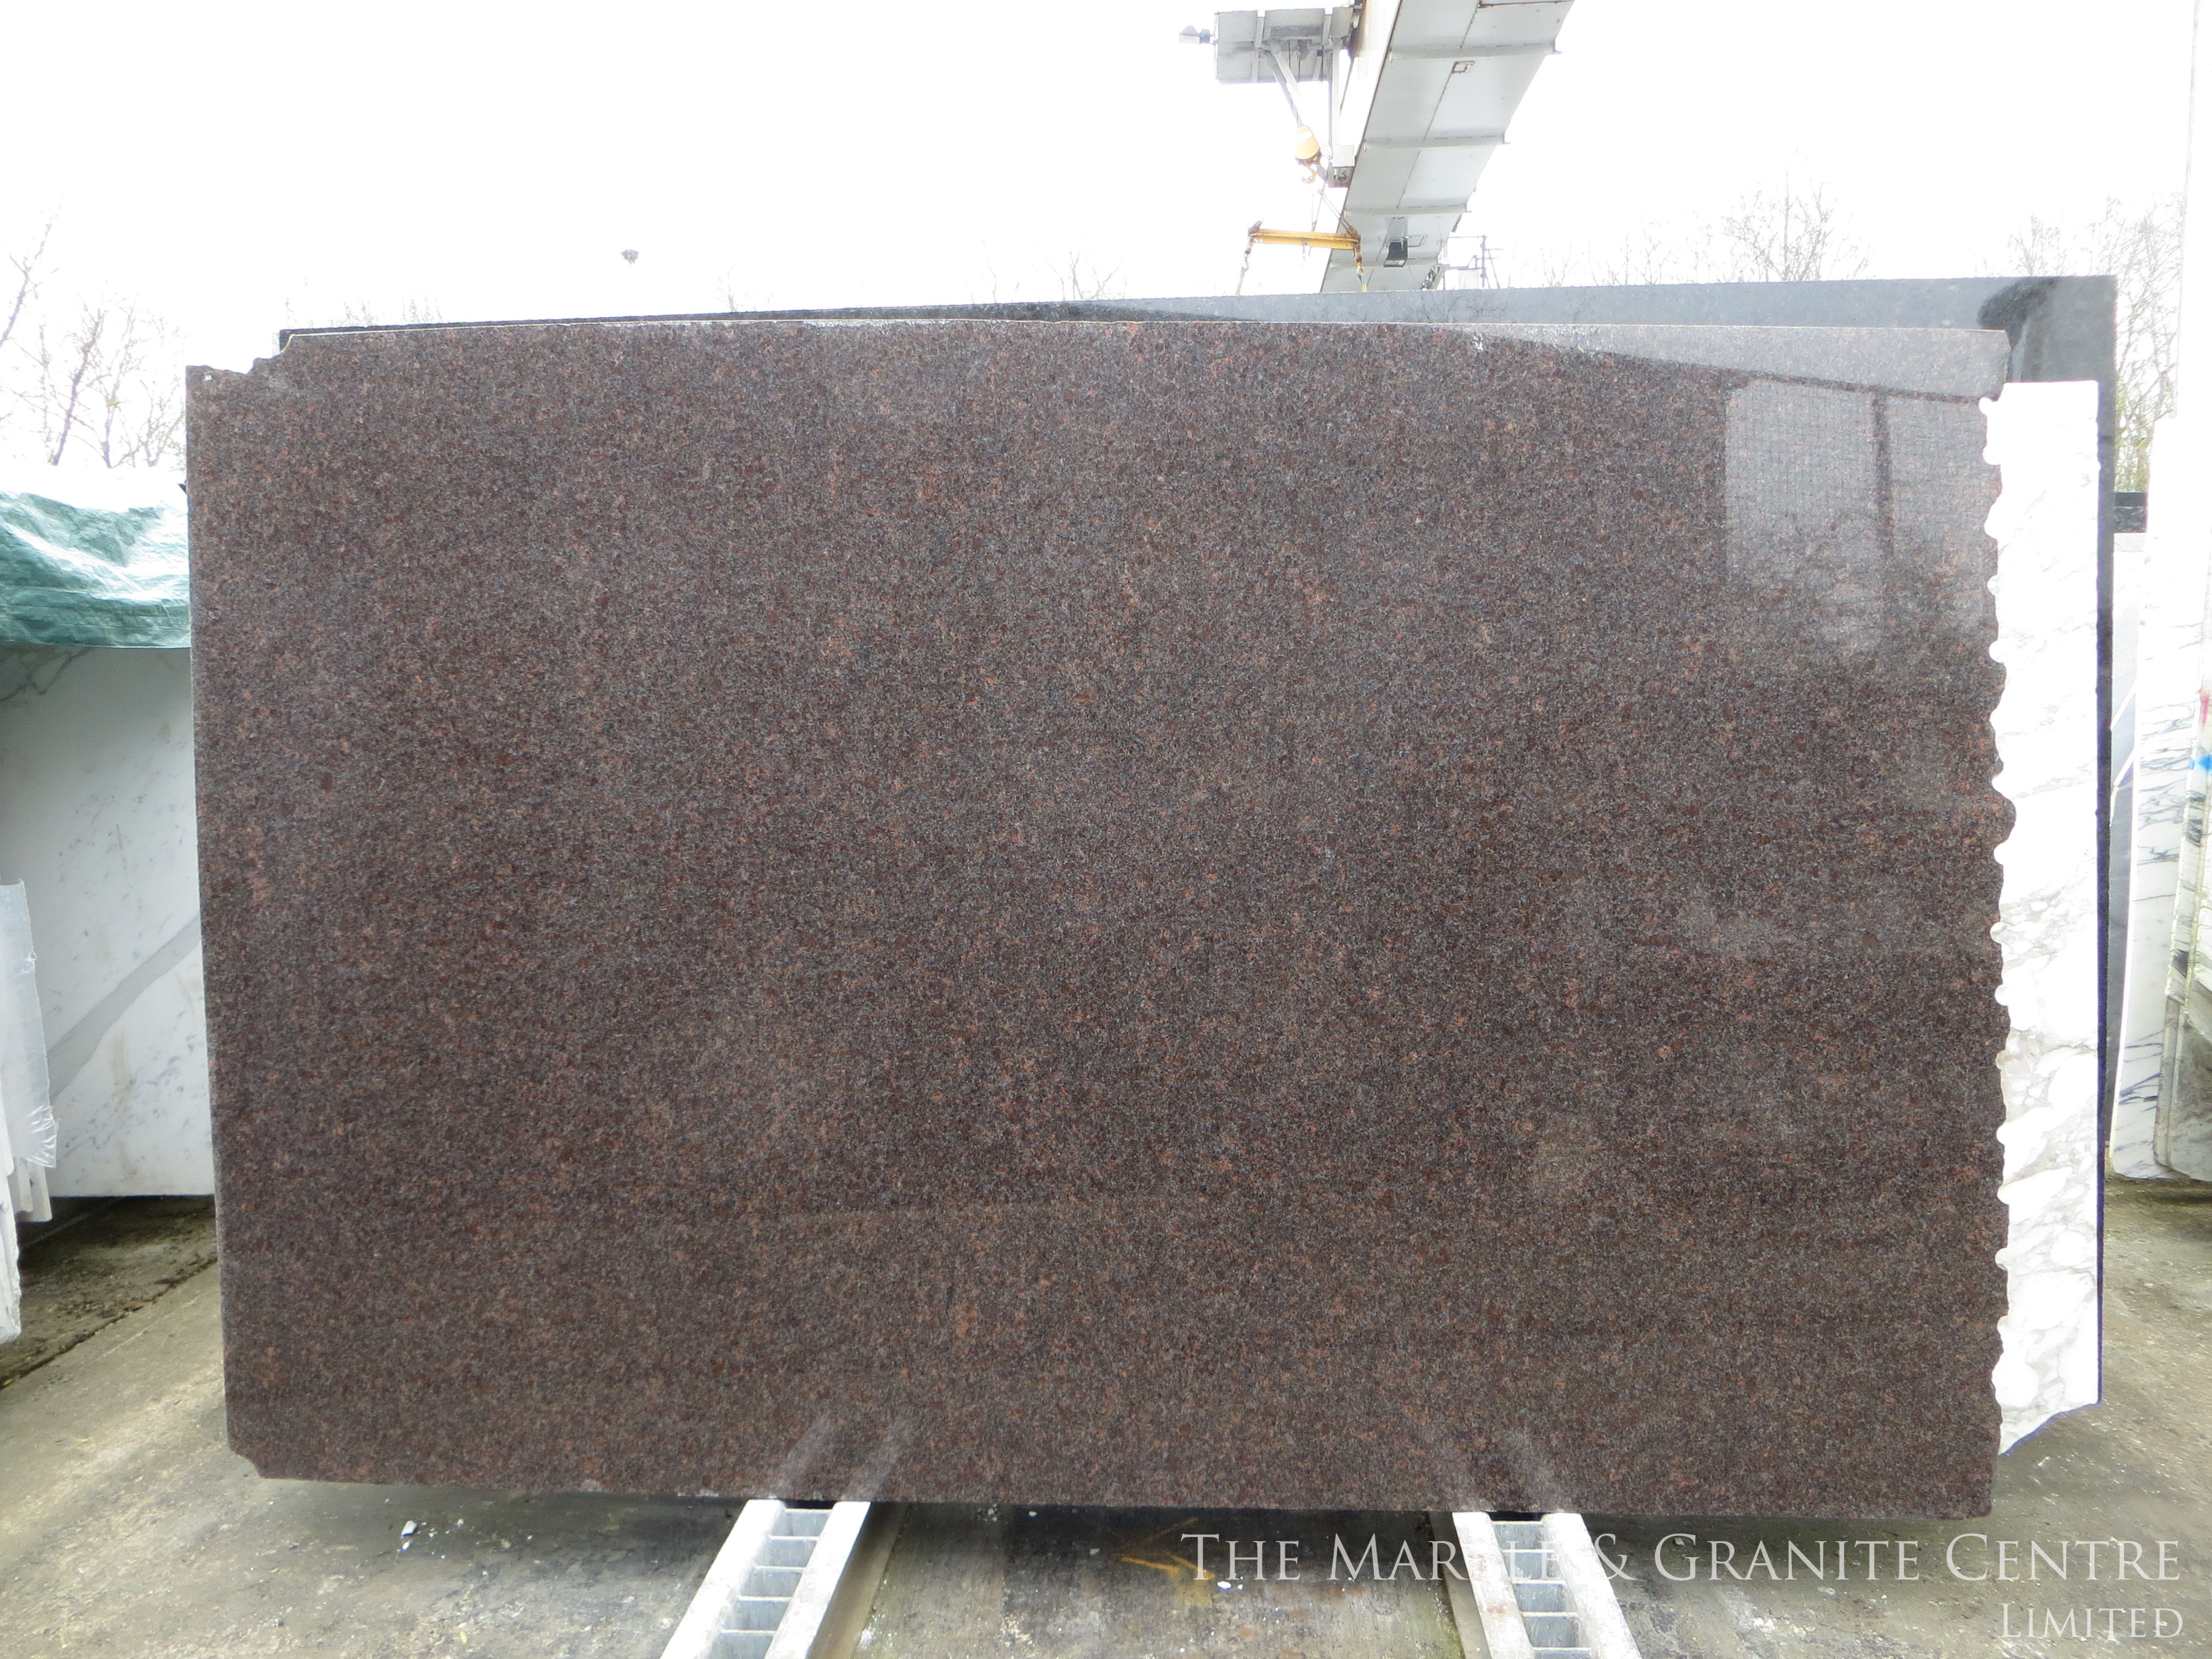 Granite Dakota Mahogany Polished 20 mm [25420]